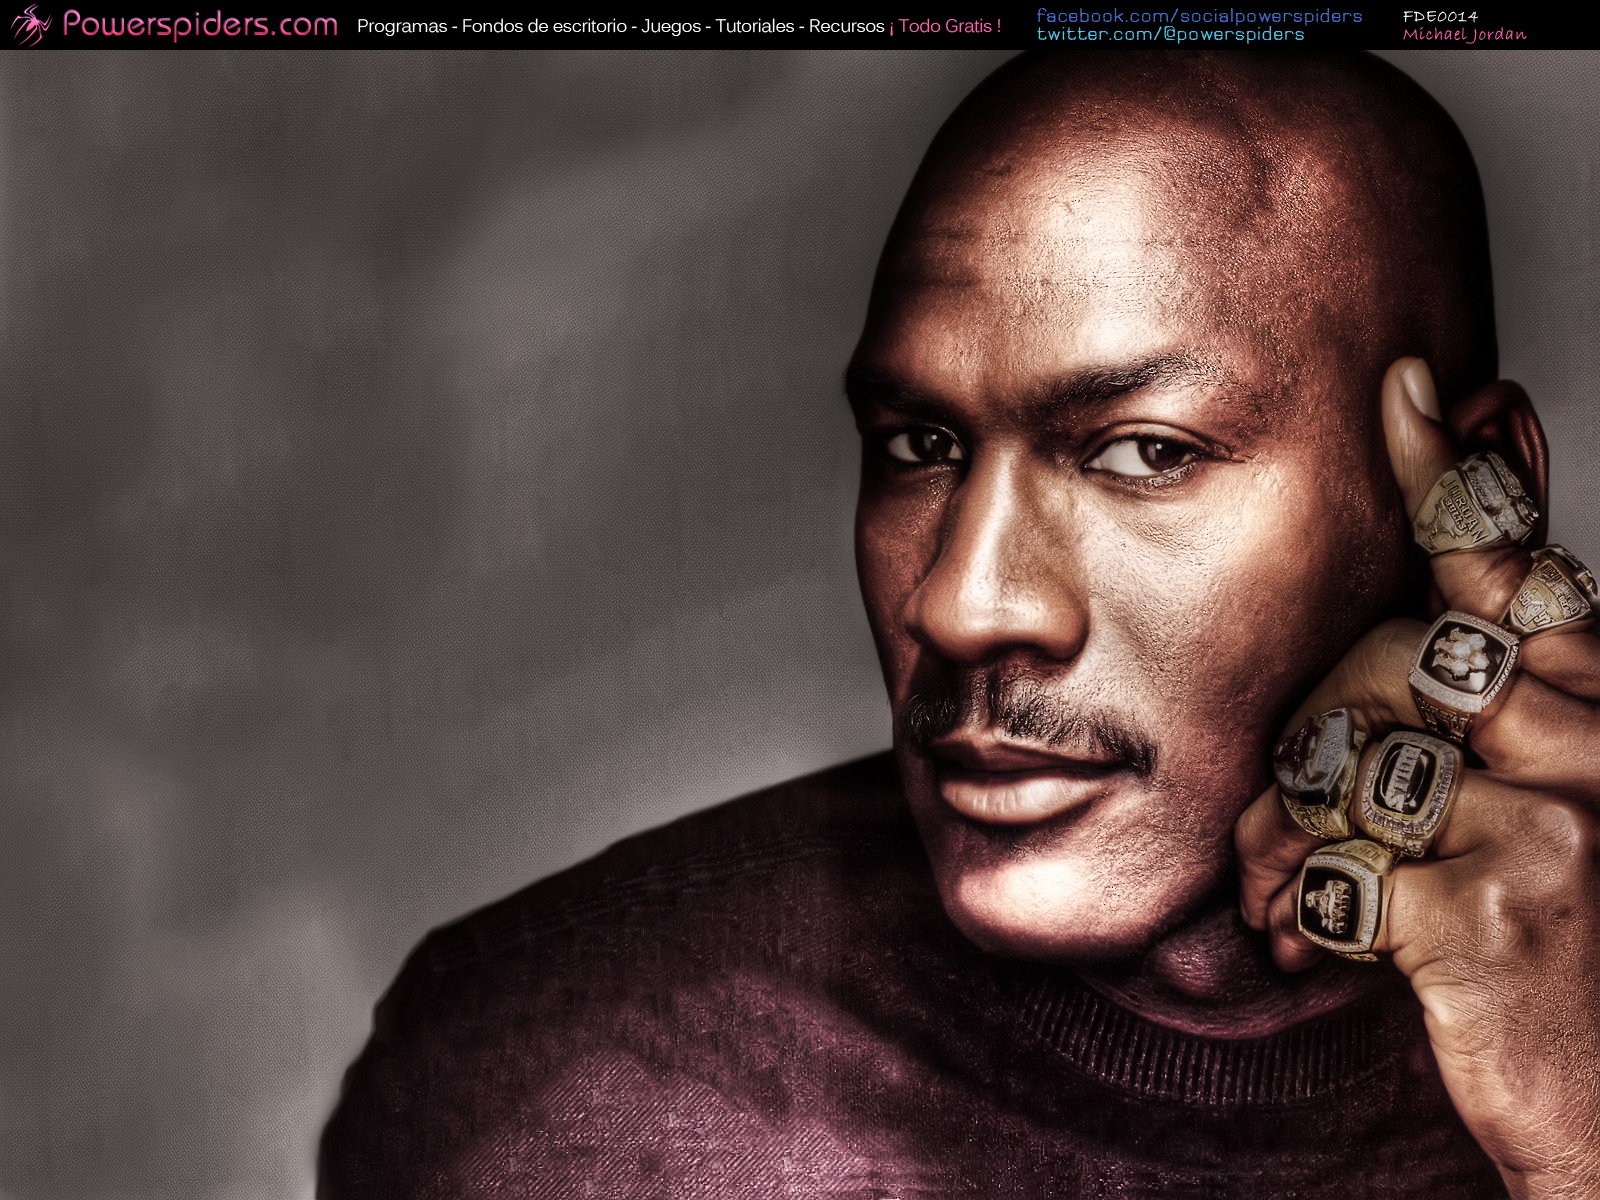 Michael Jordan by powerspiders